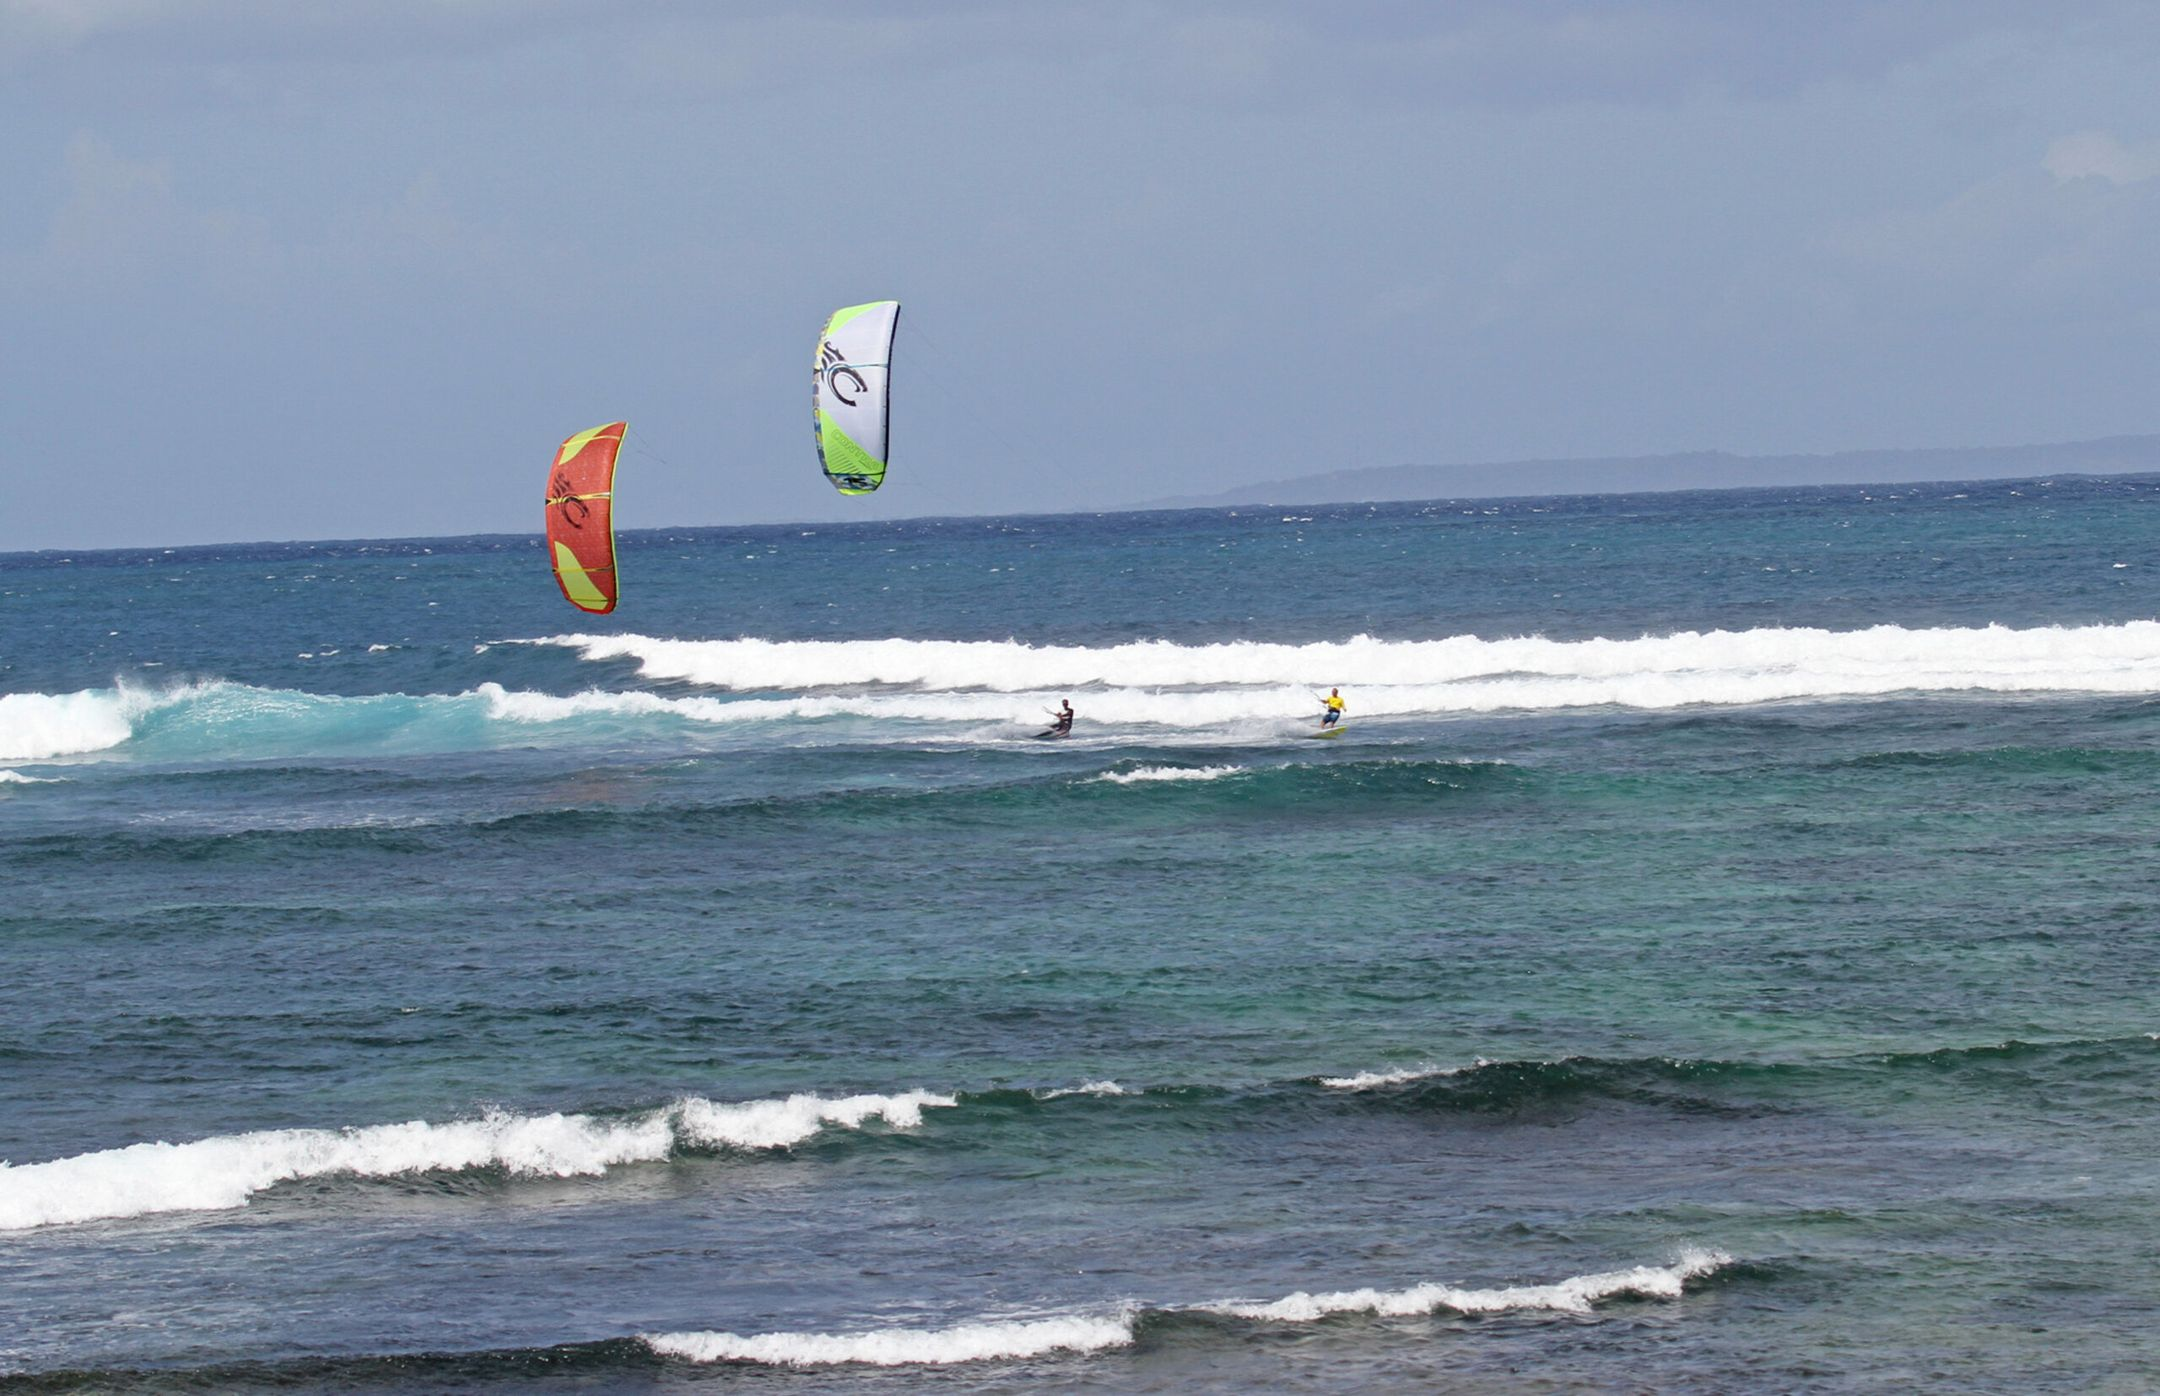 kitesurfing Indonesia kitespot Bali ripatrip travel big